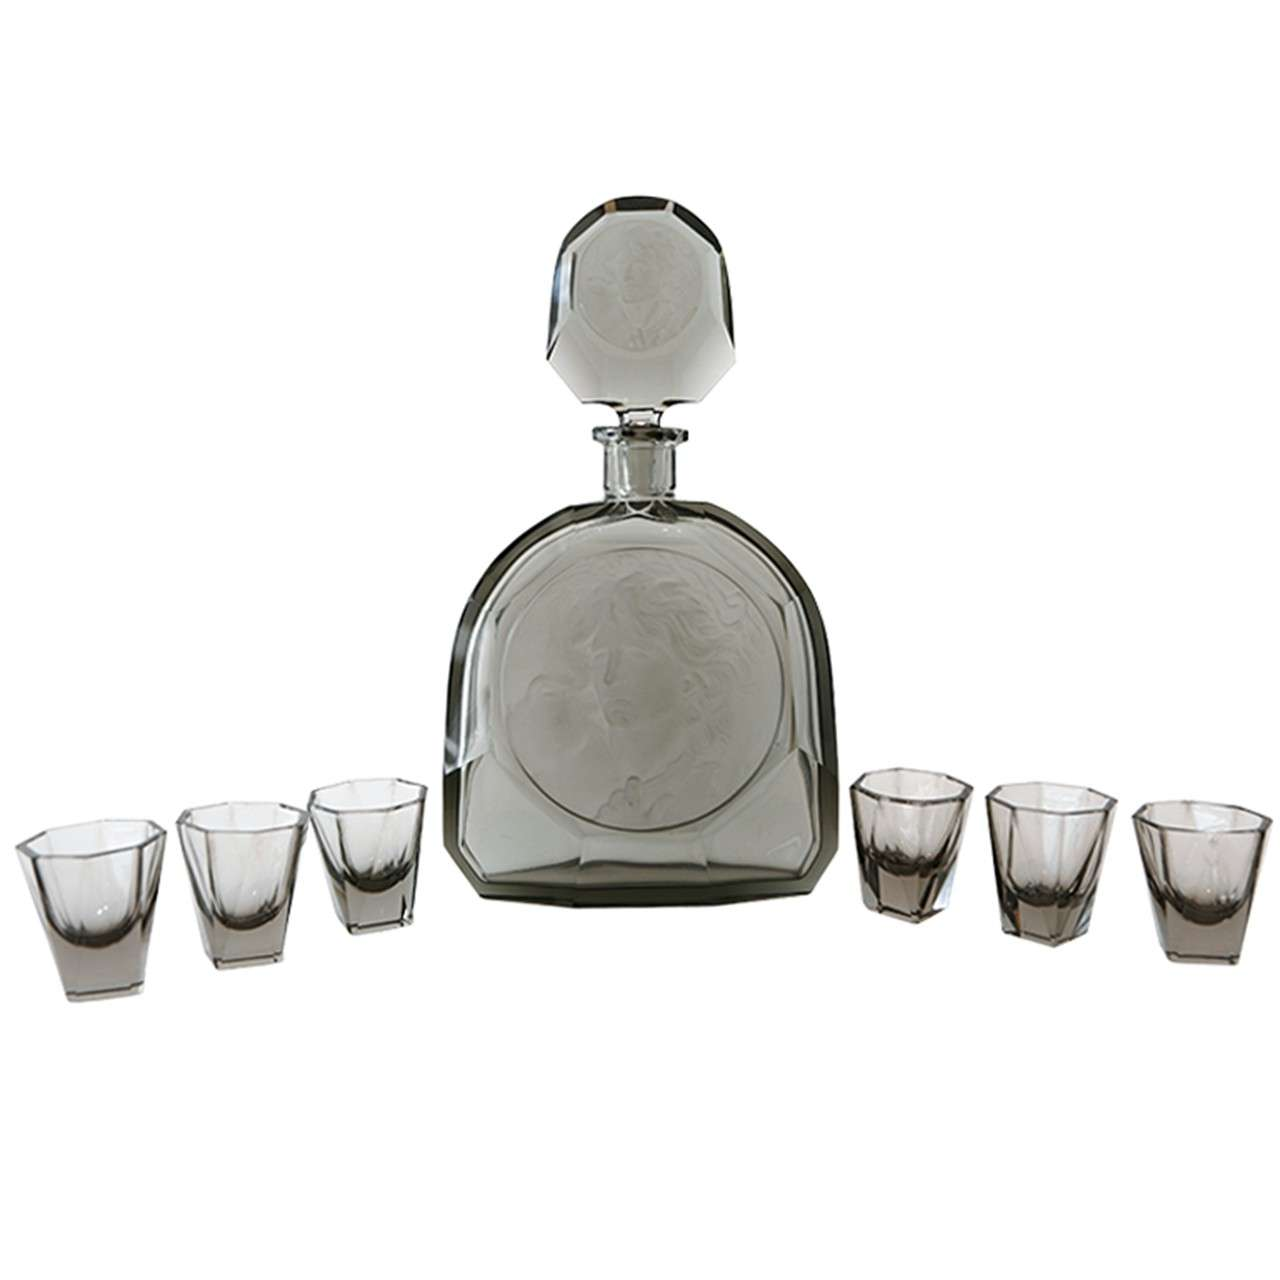 Art Deco Decanter & Set of Six Schnapps Glasses